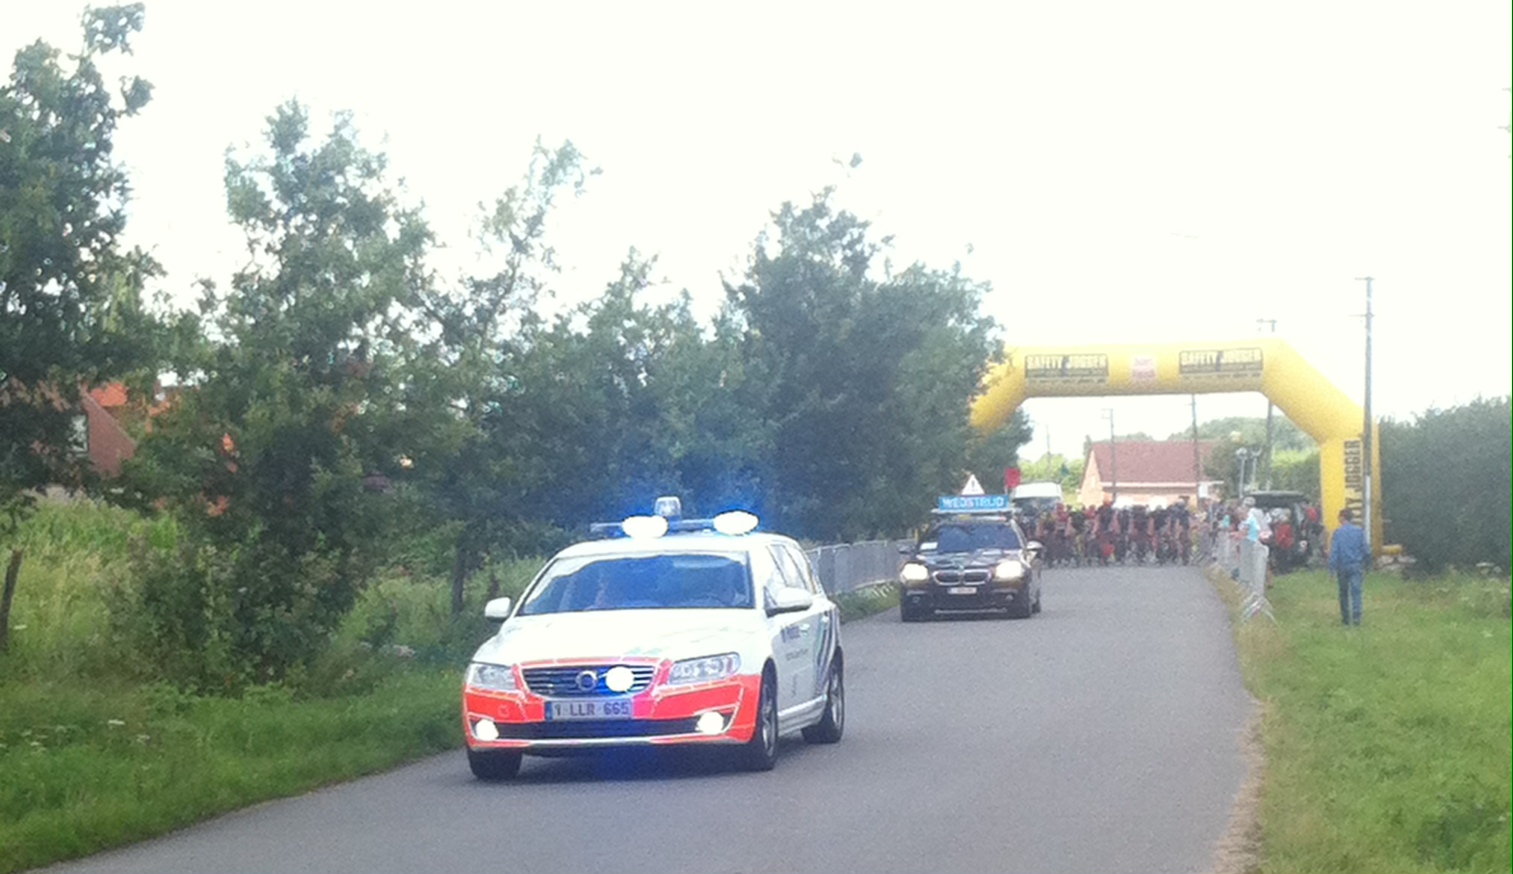 A common sight at all Belgian kermis races - extensive police co-operation & they do a great job